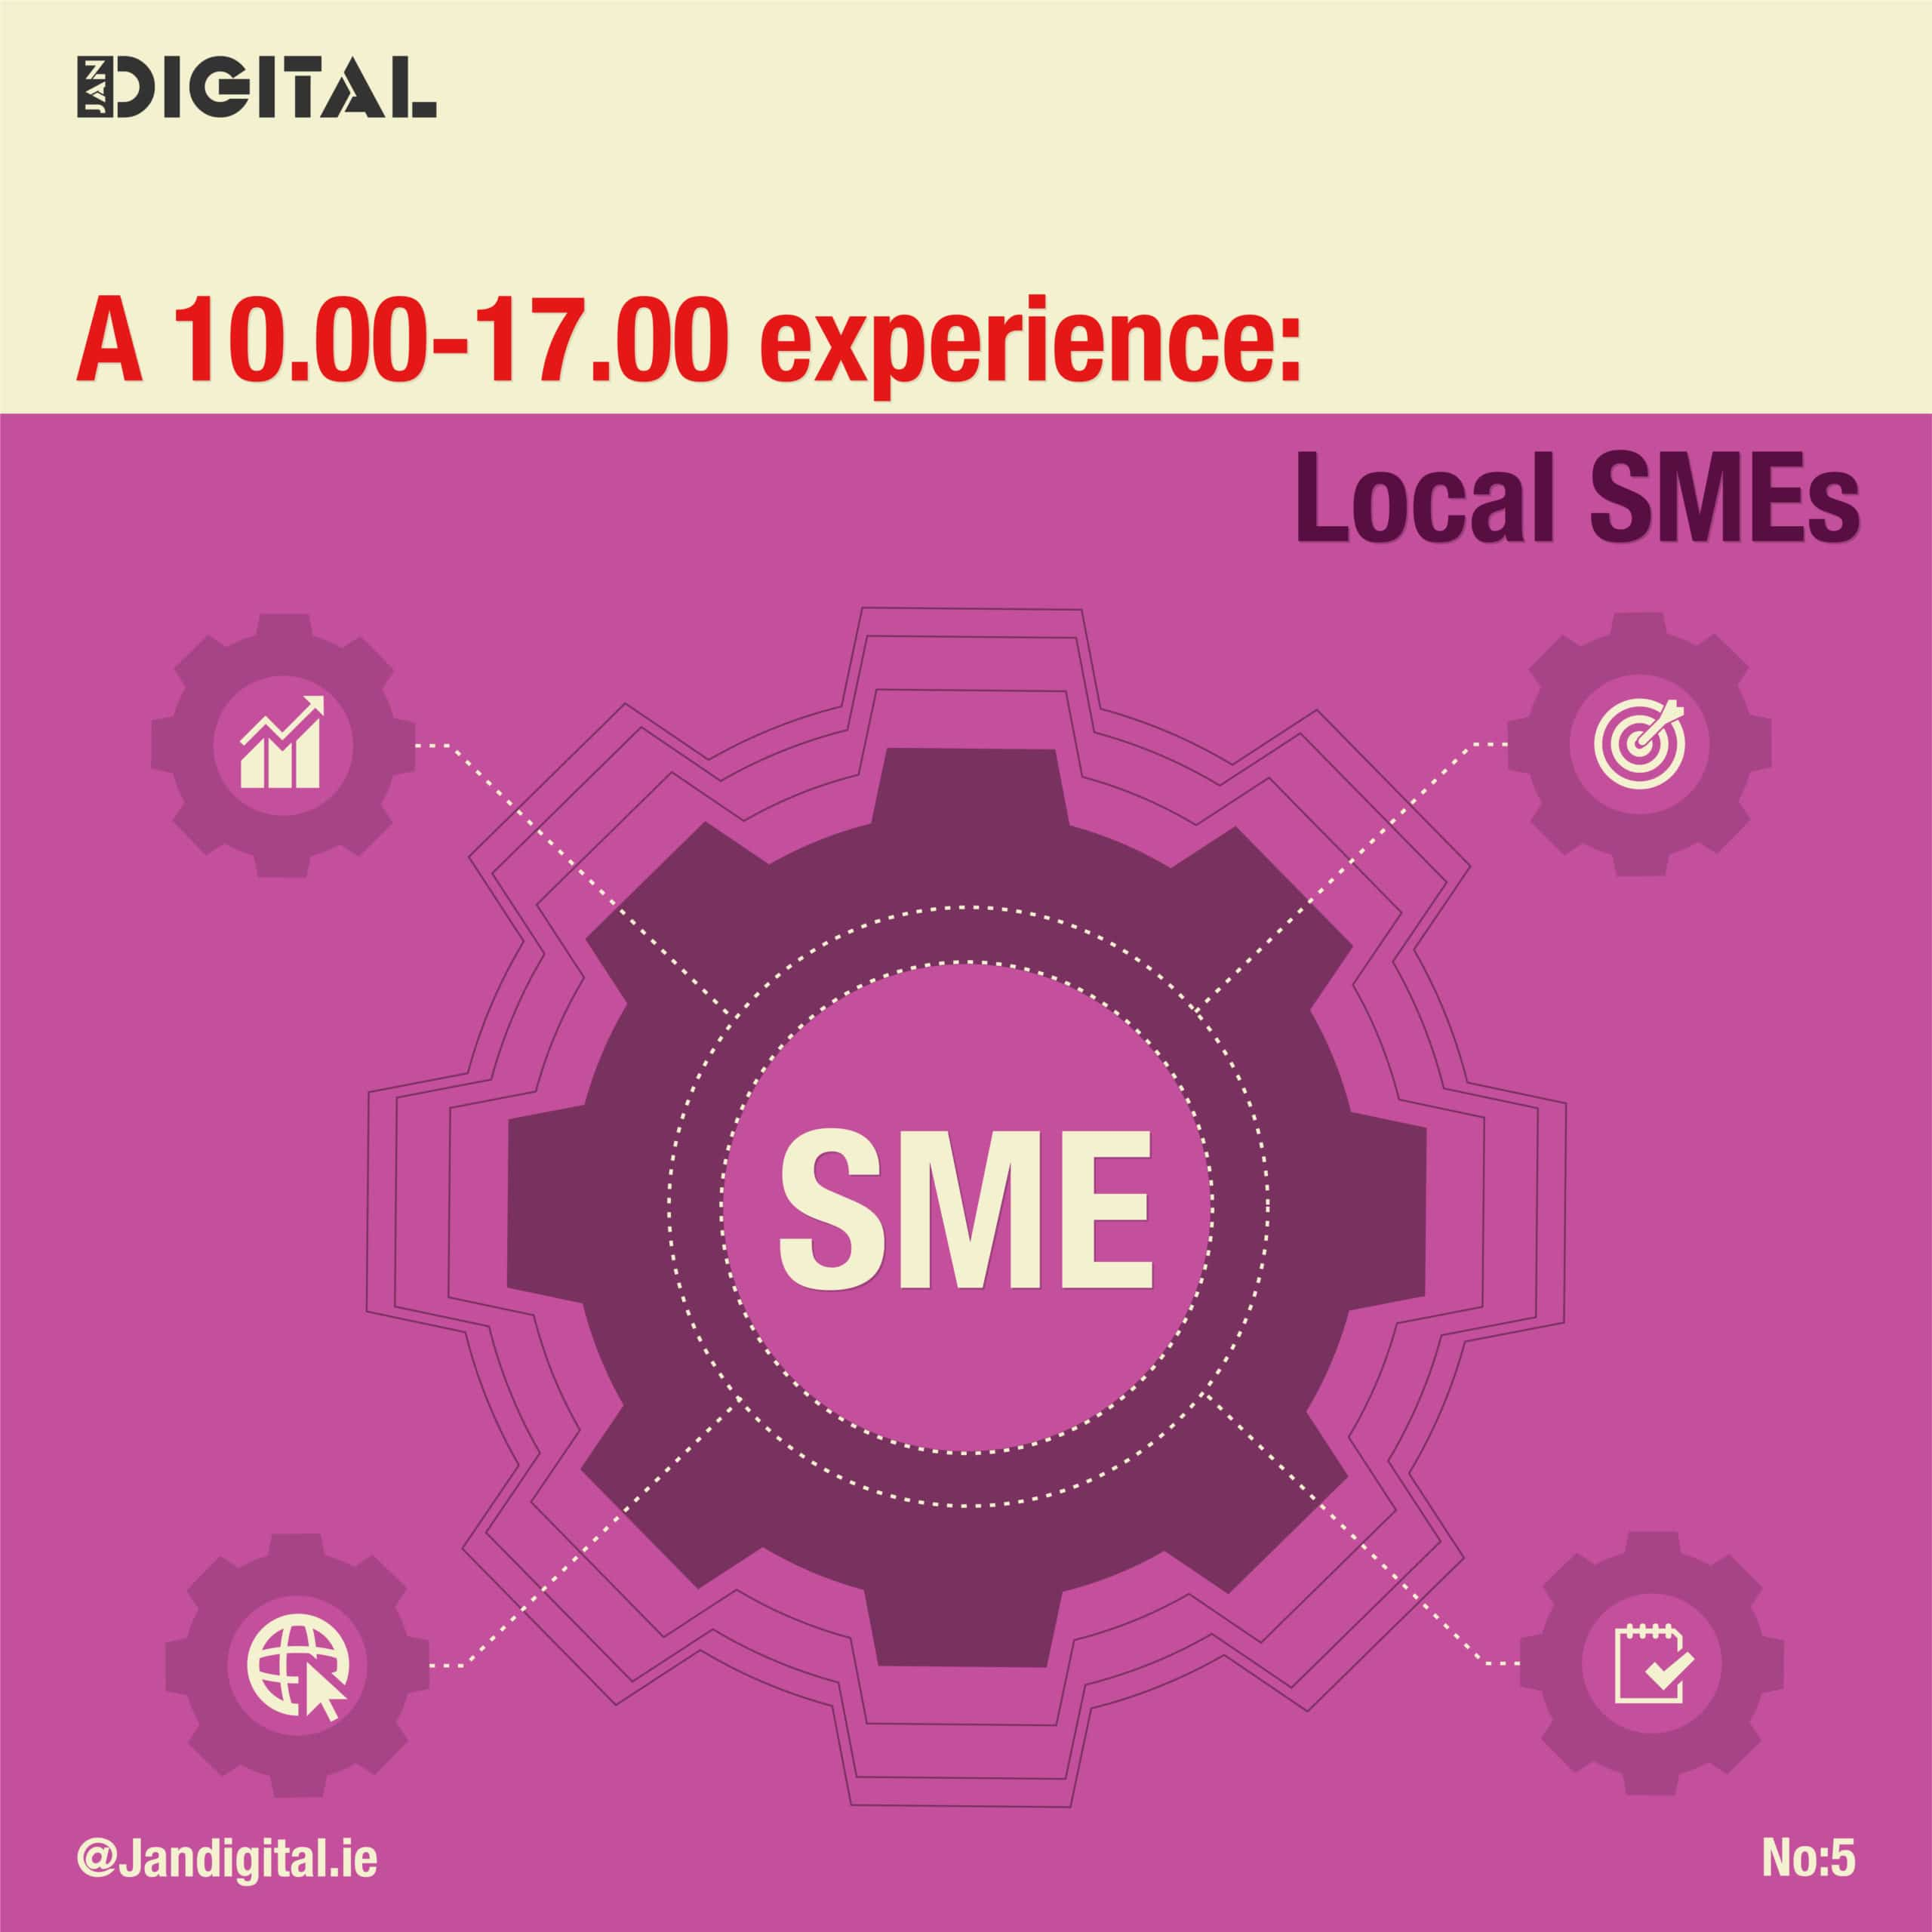 local SMEs